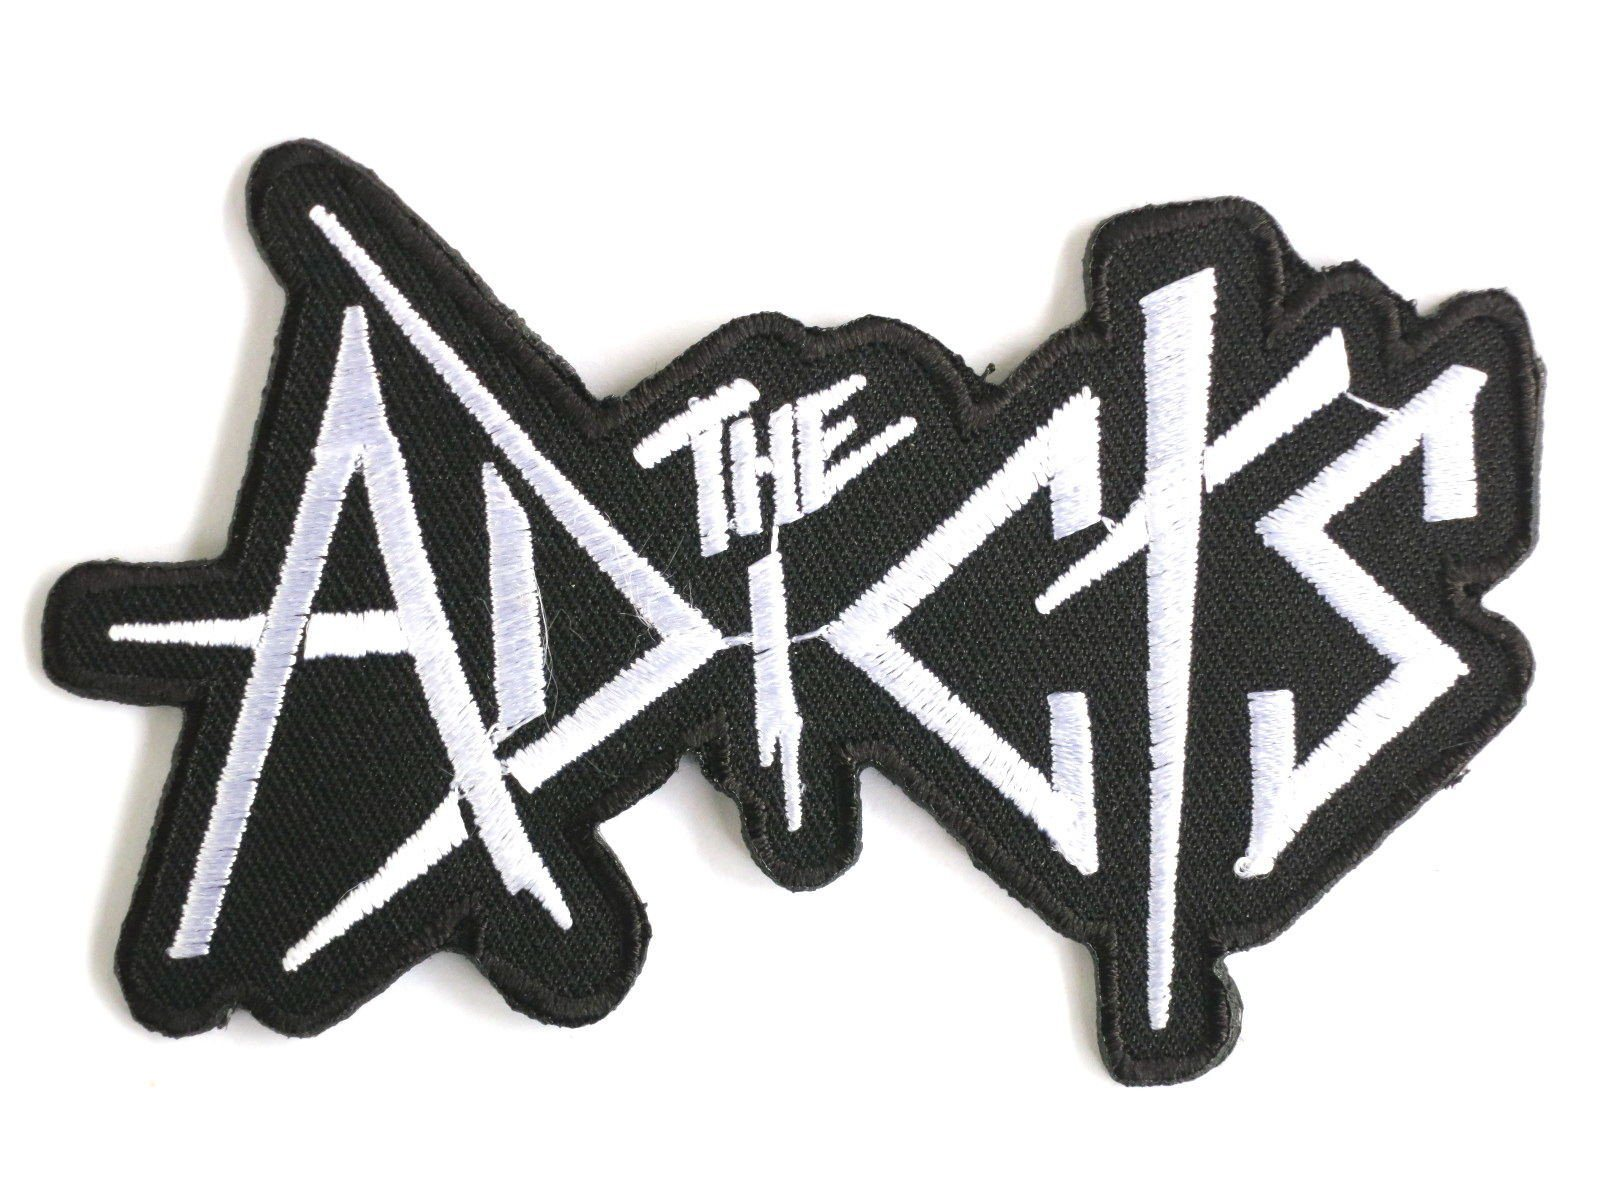 "THE ADICTS Punk Skins Iron On Embroidered Patch 4""/10cm - A Patch E Store"